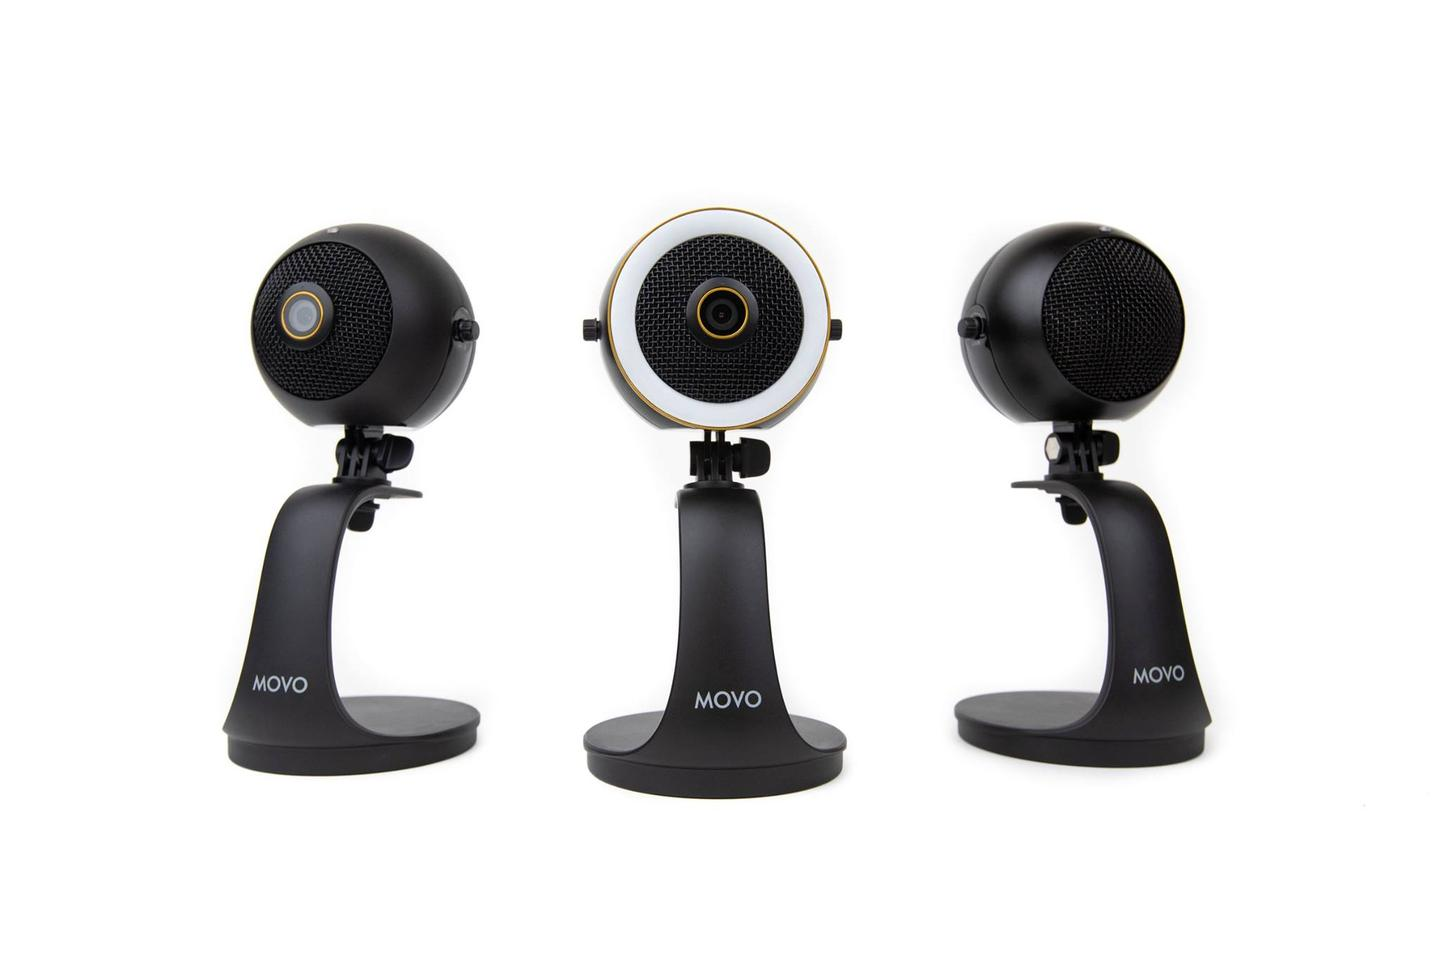 The WebMic family has camera/mic/lighting combos, webcam and mic options, and a solo microphone flavor